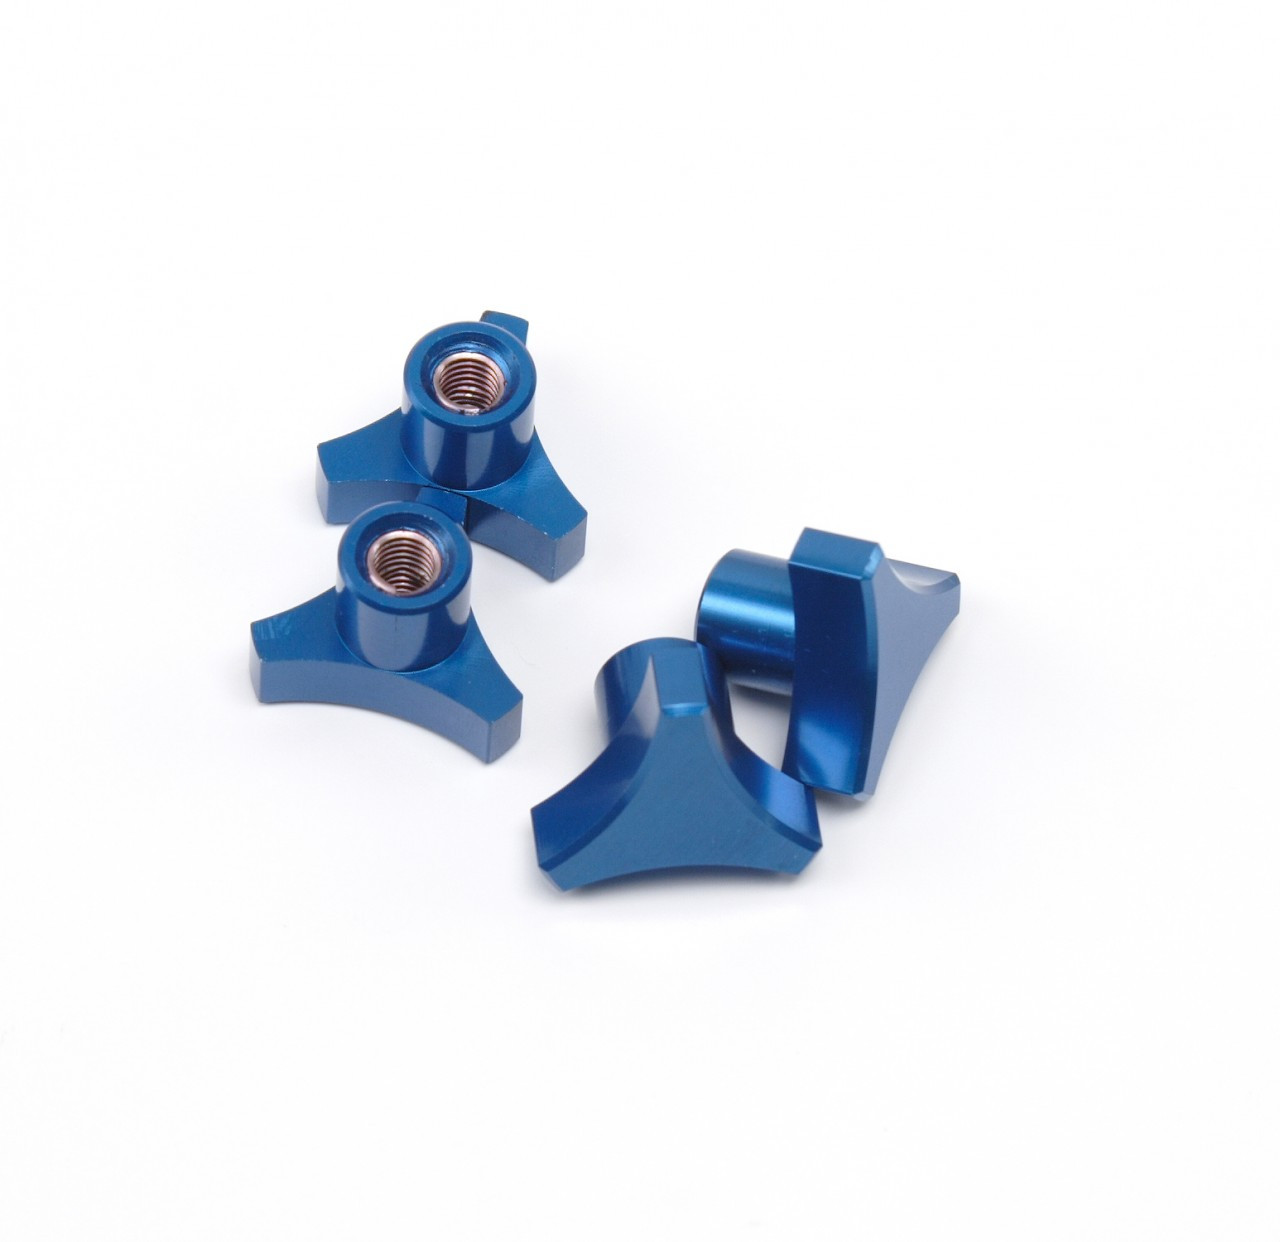 Traxxas T-MAXX E-MAXX 3 Spoke Blue Anodized locking hub nuts.  Get rid of those stock 5mm lock nuts and pop some of these in there!